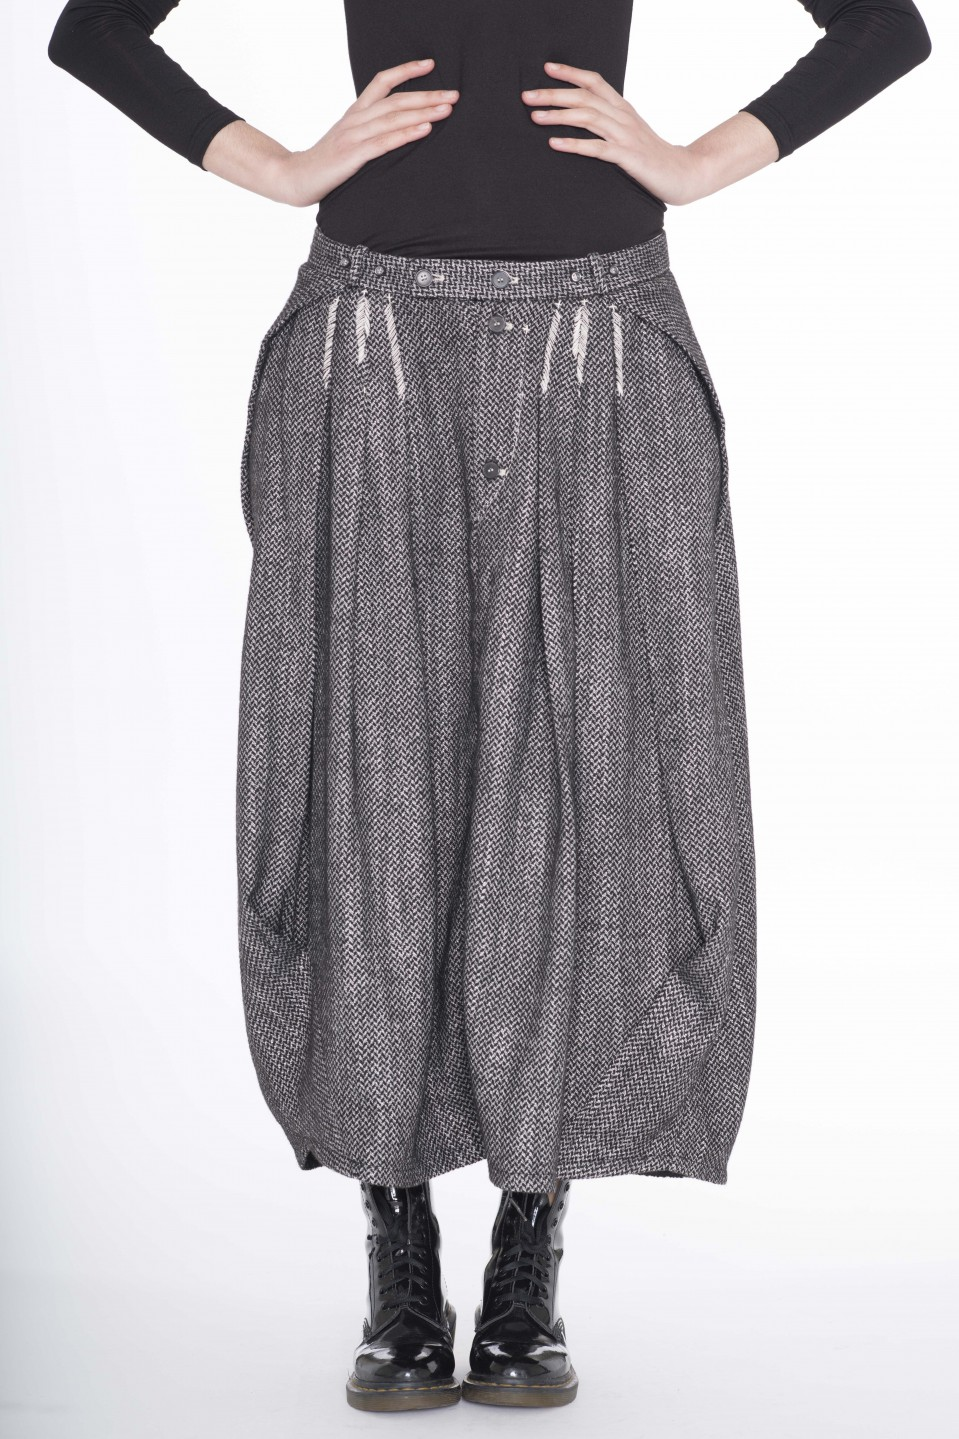 grey volume skirt, with hand stitches